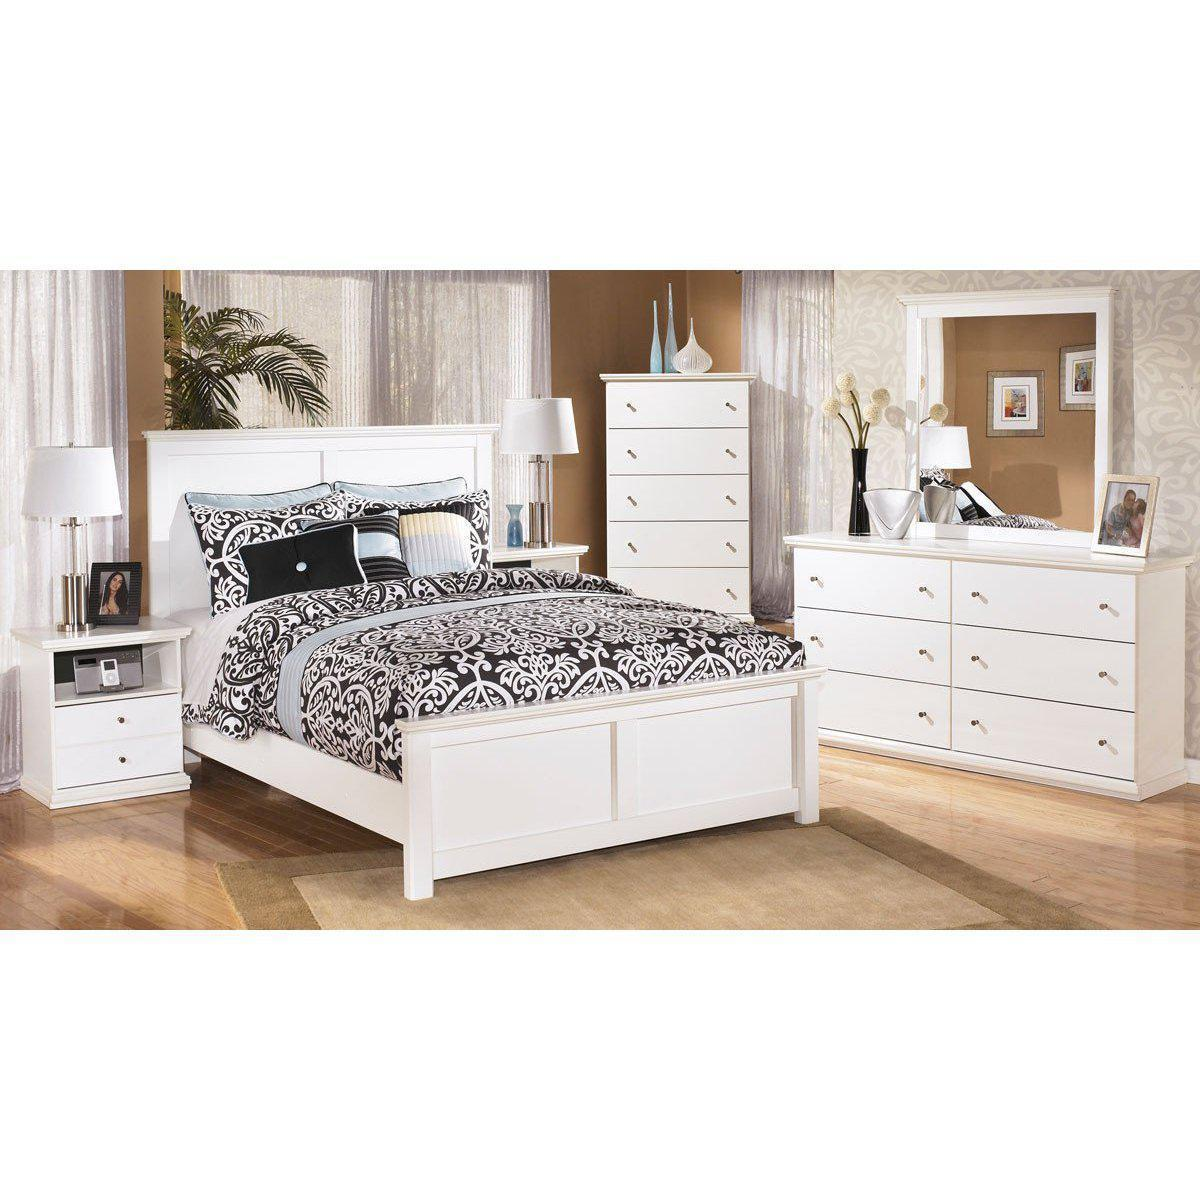 Maribel Bedroom Set